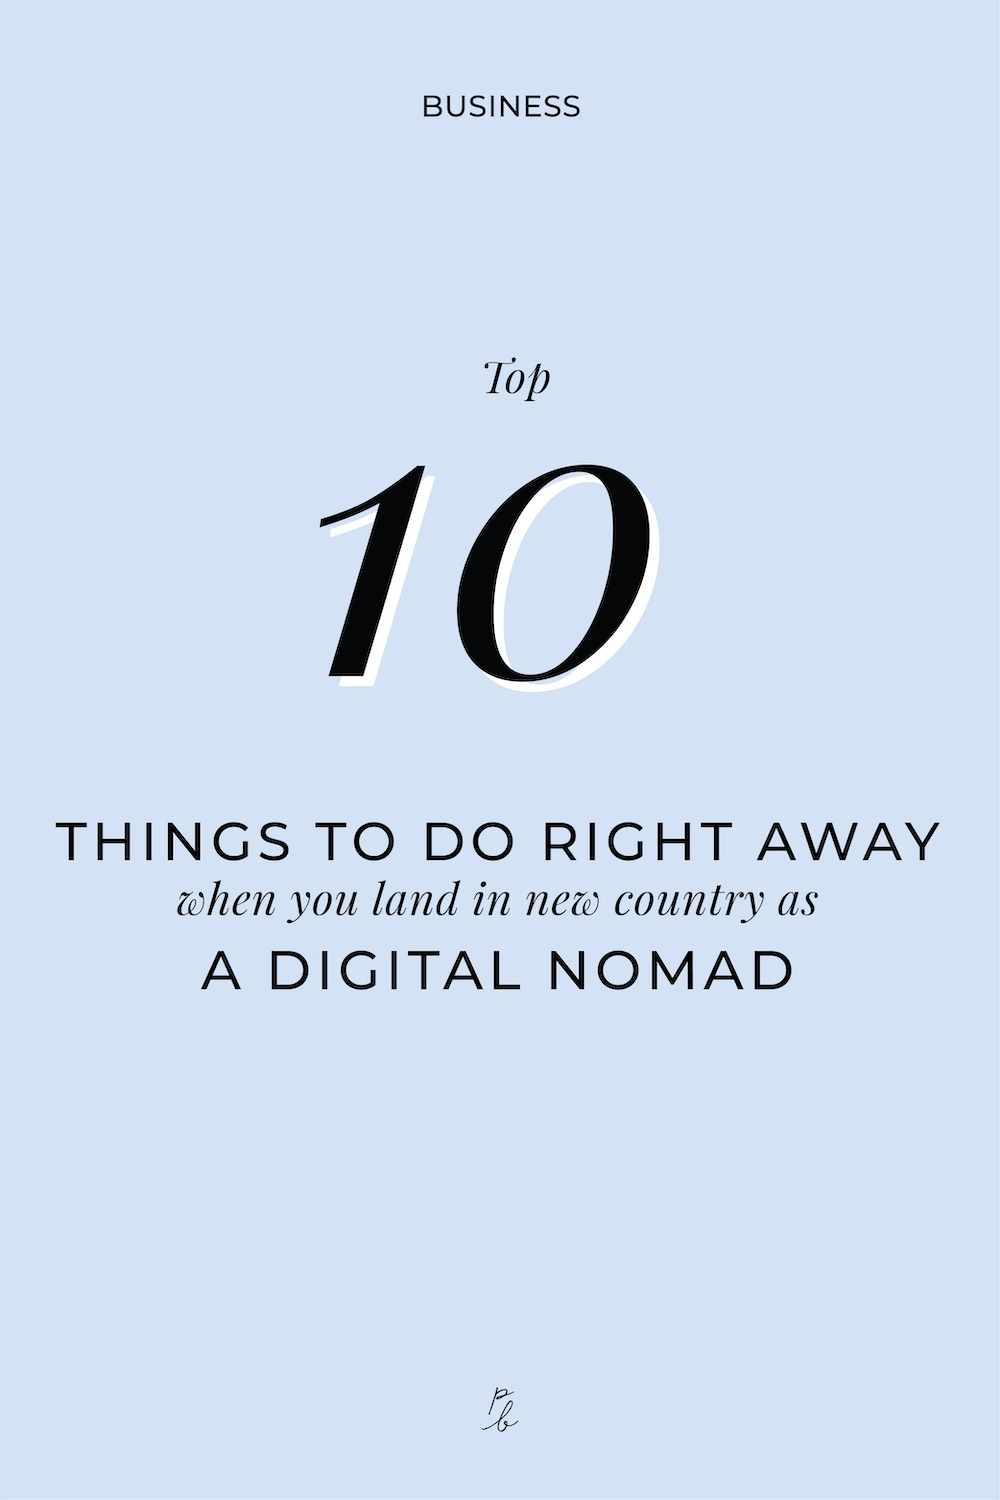 2-Top 10 things to do right away when you land in a new country as a digital nomad.jpg